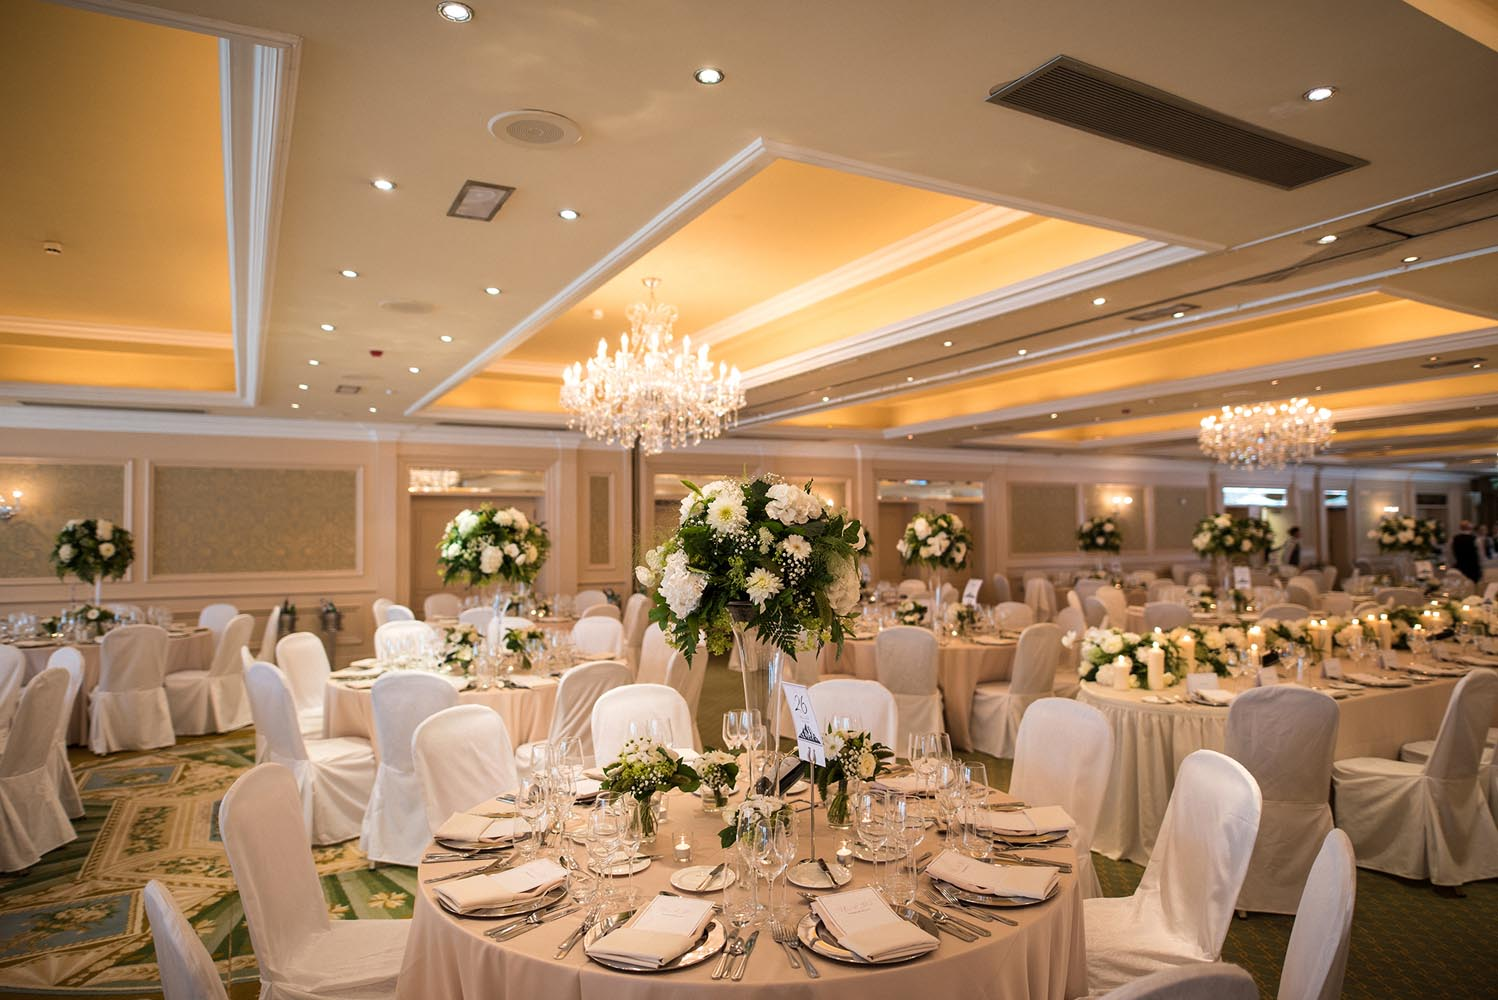 Tables set for a wedding at the Newpark Hotel Kilkenny